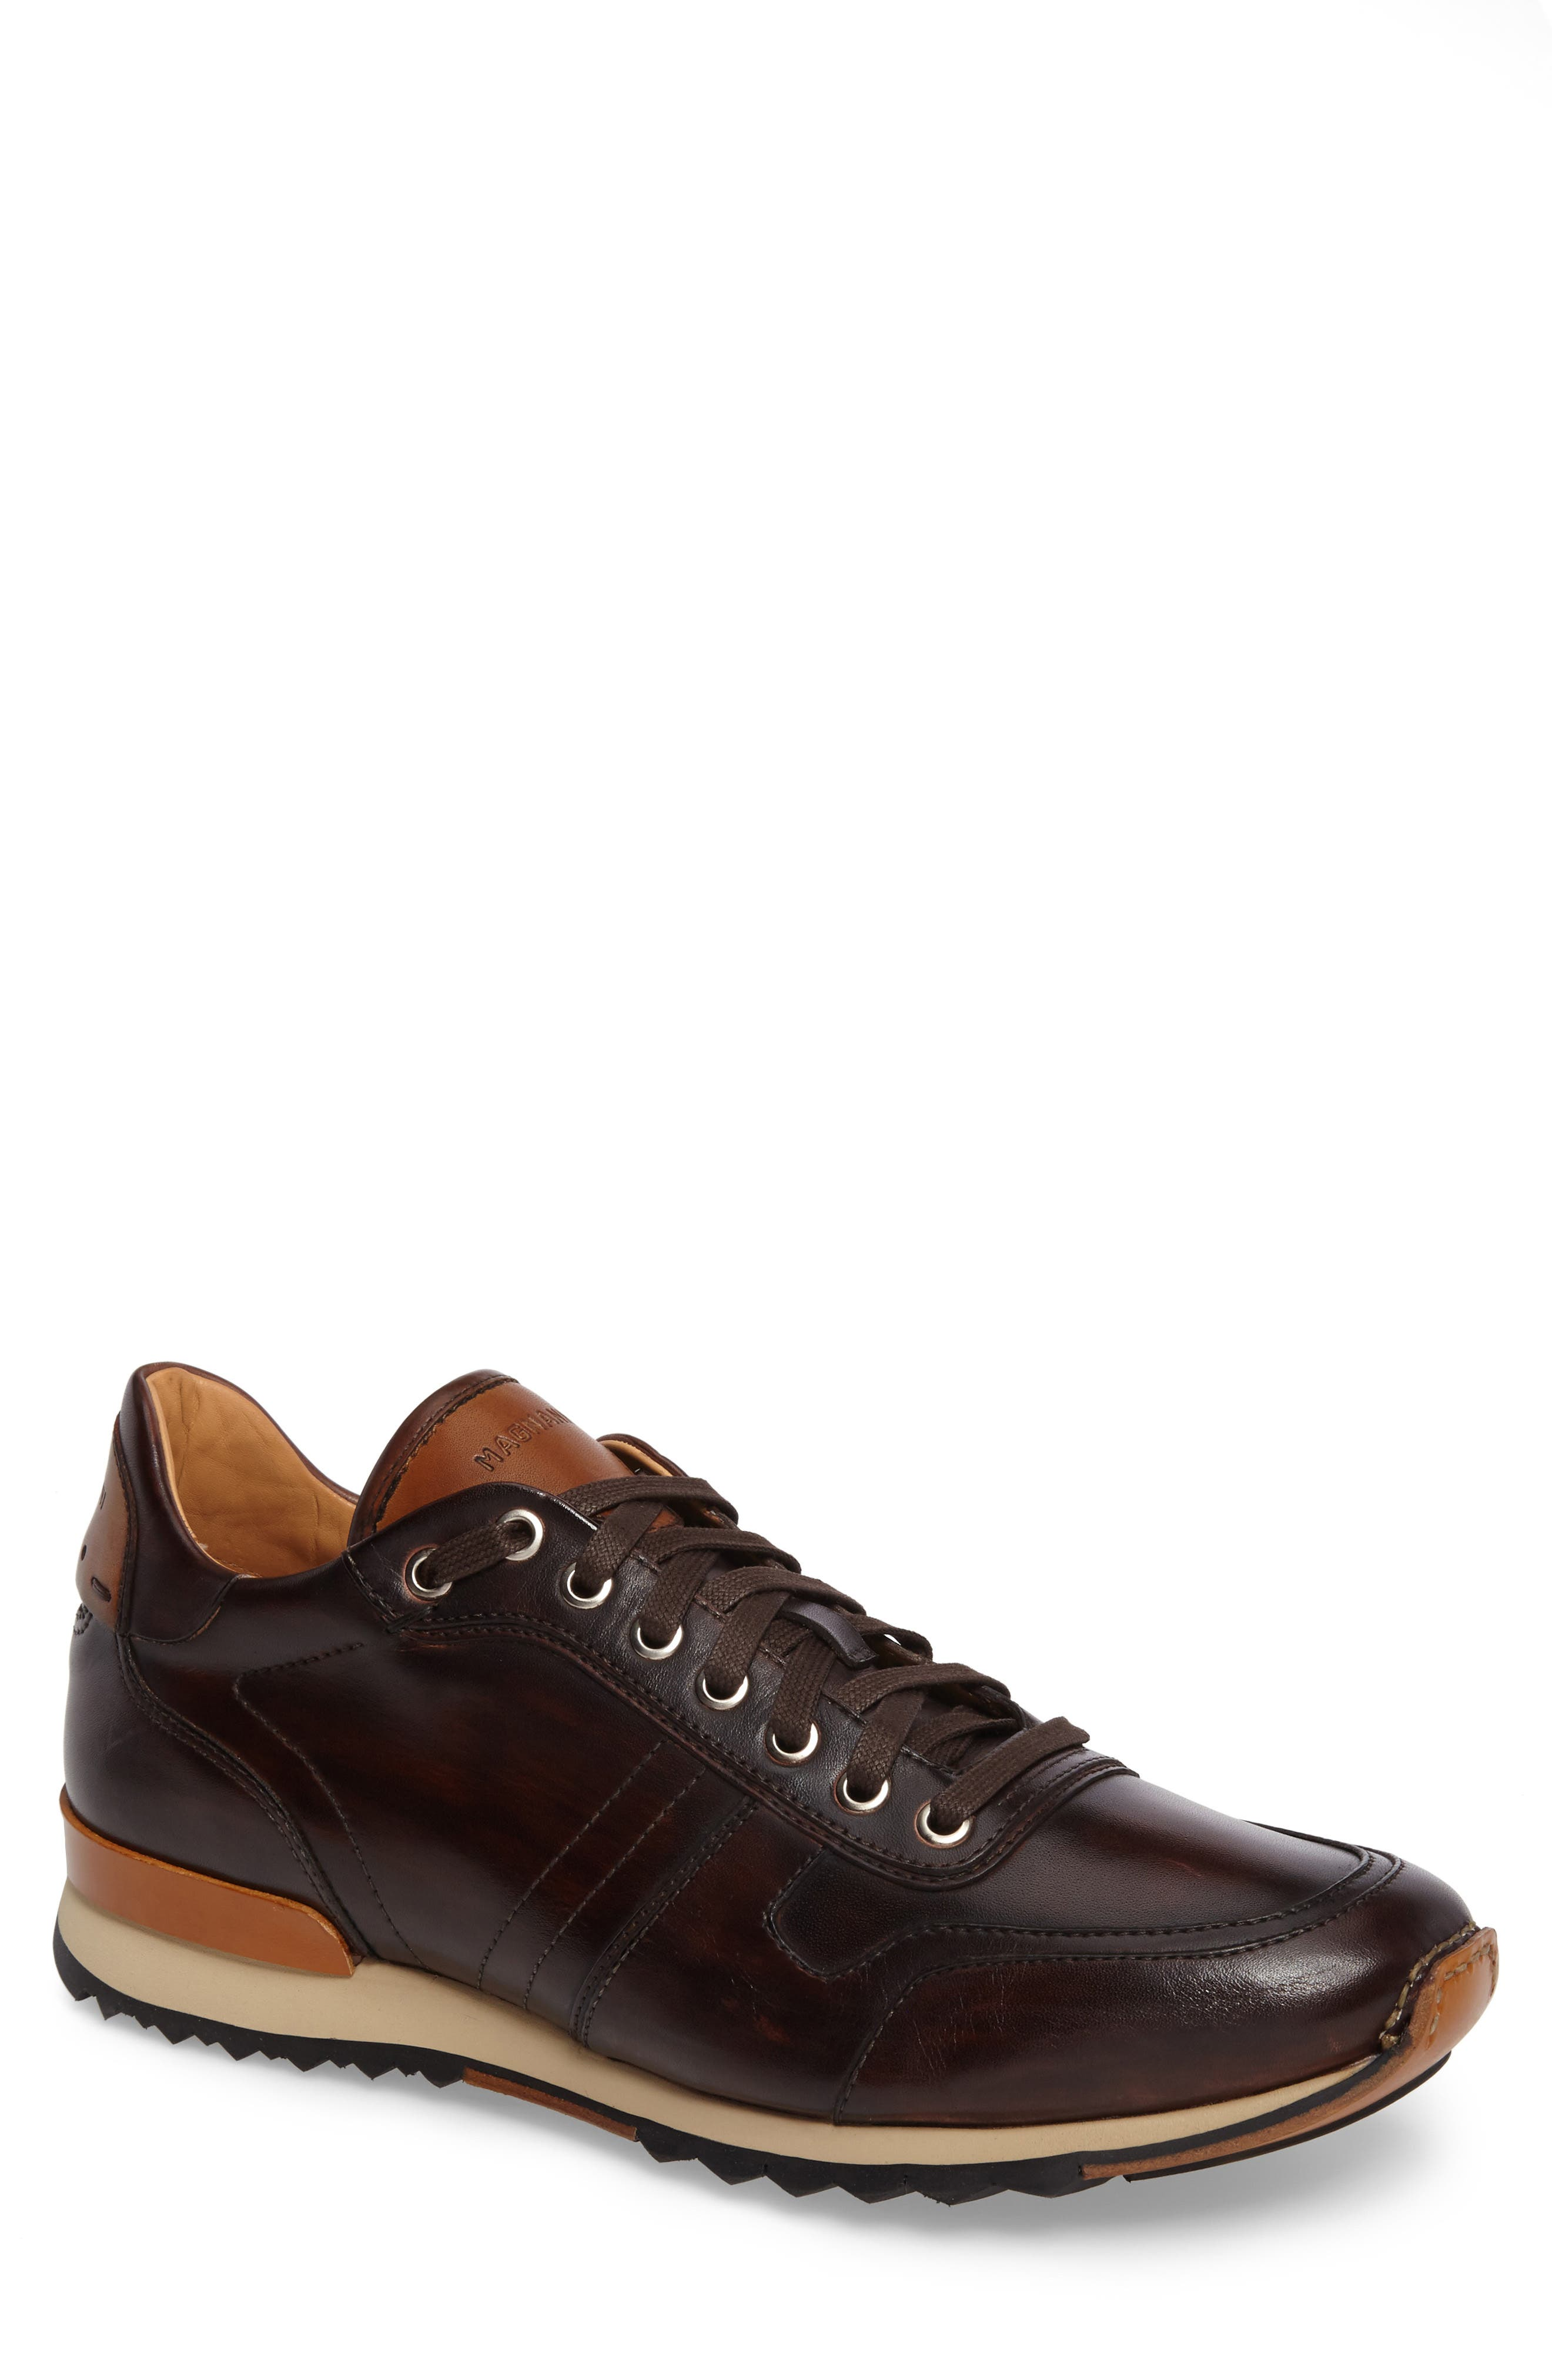 Galio Sneaker,                         Main,                         color, Brown Leather